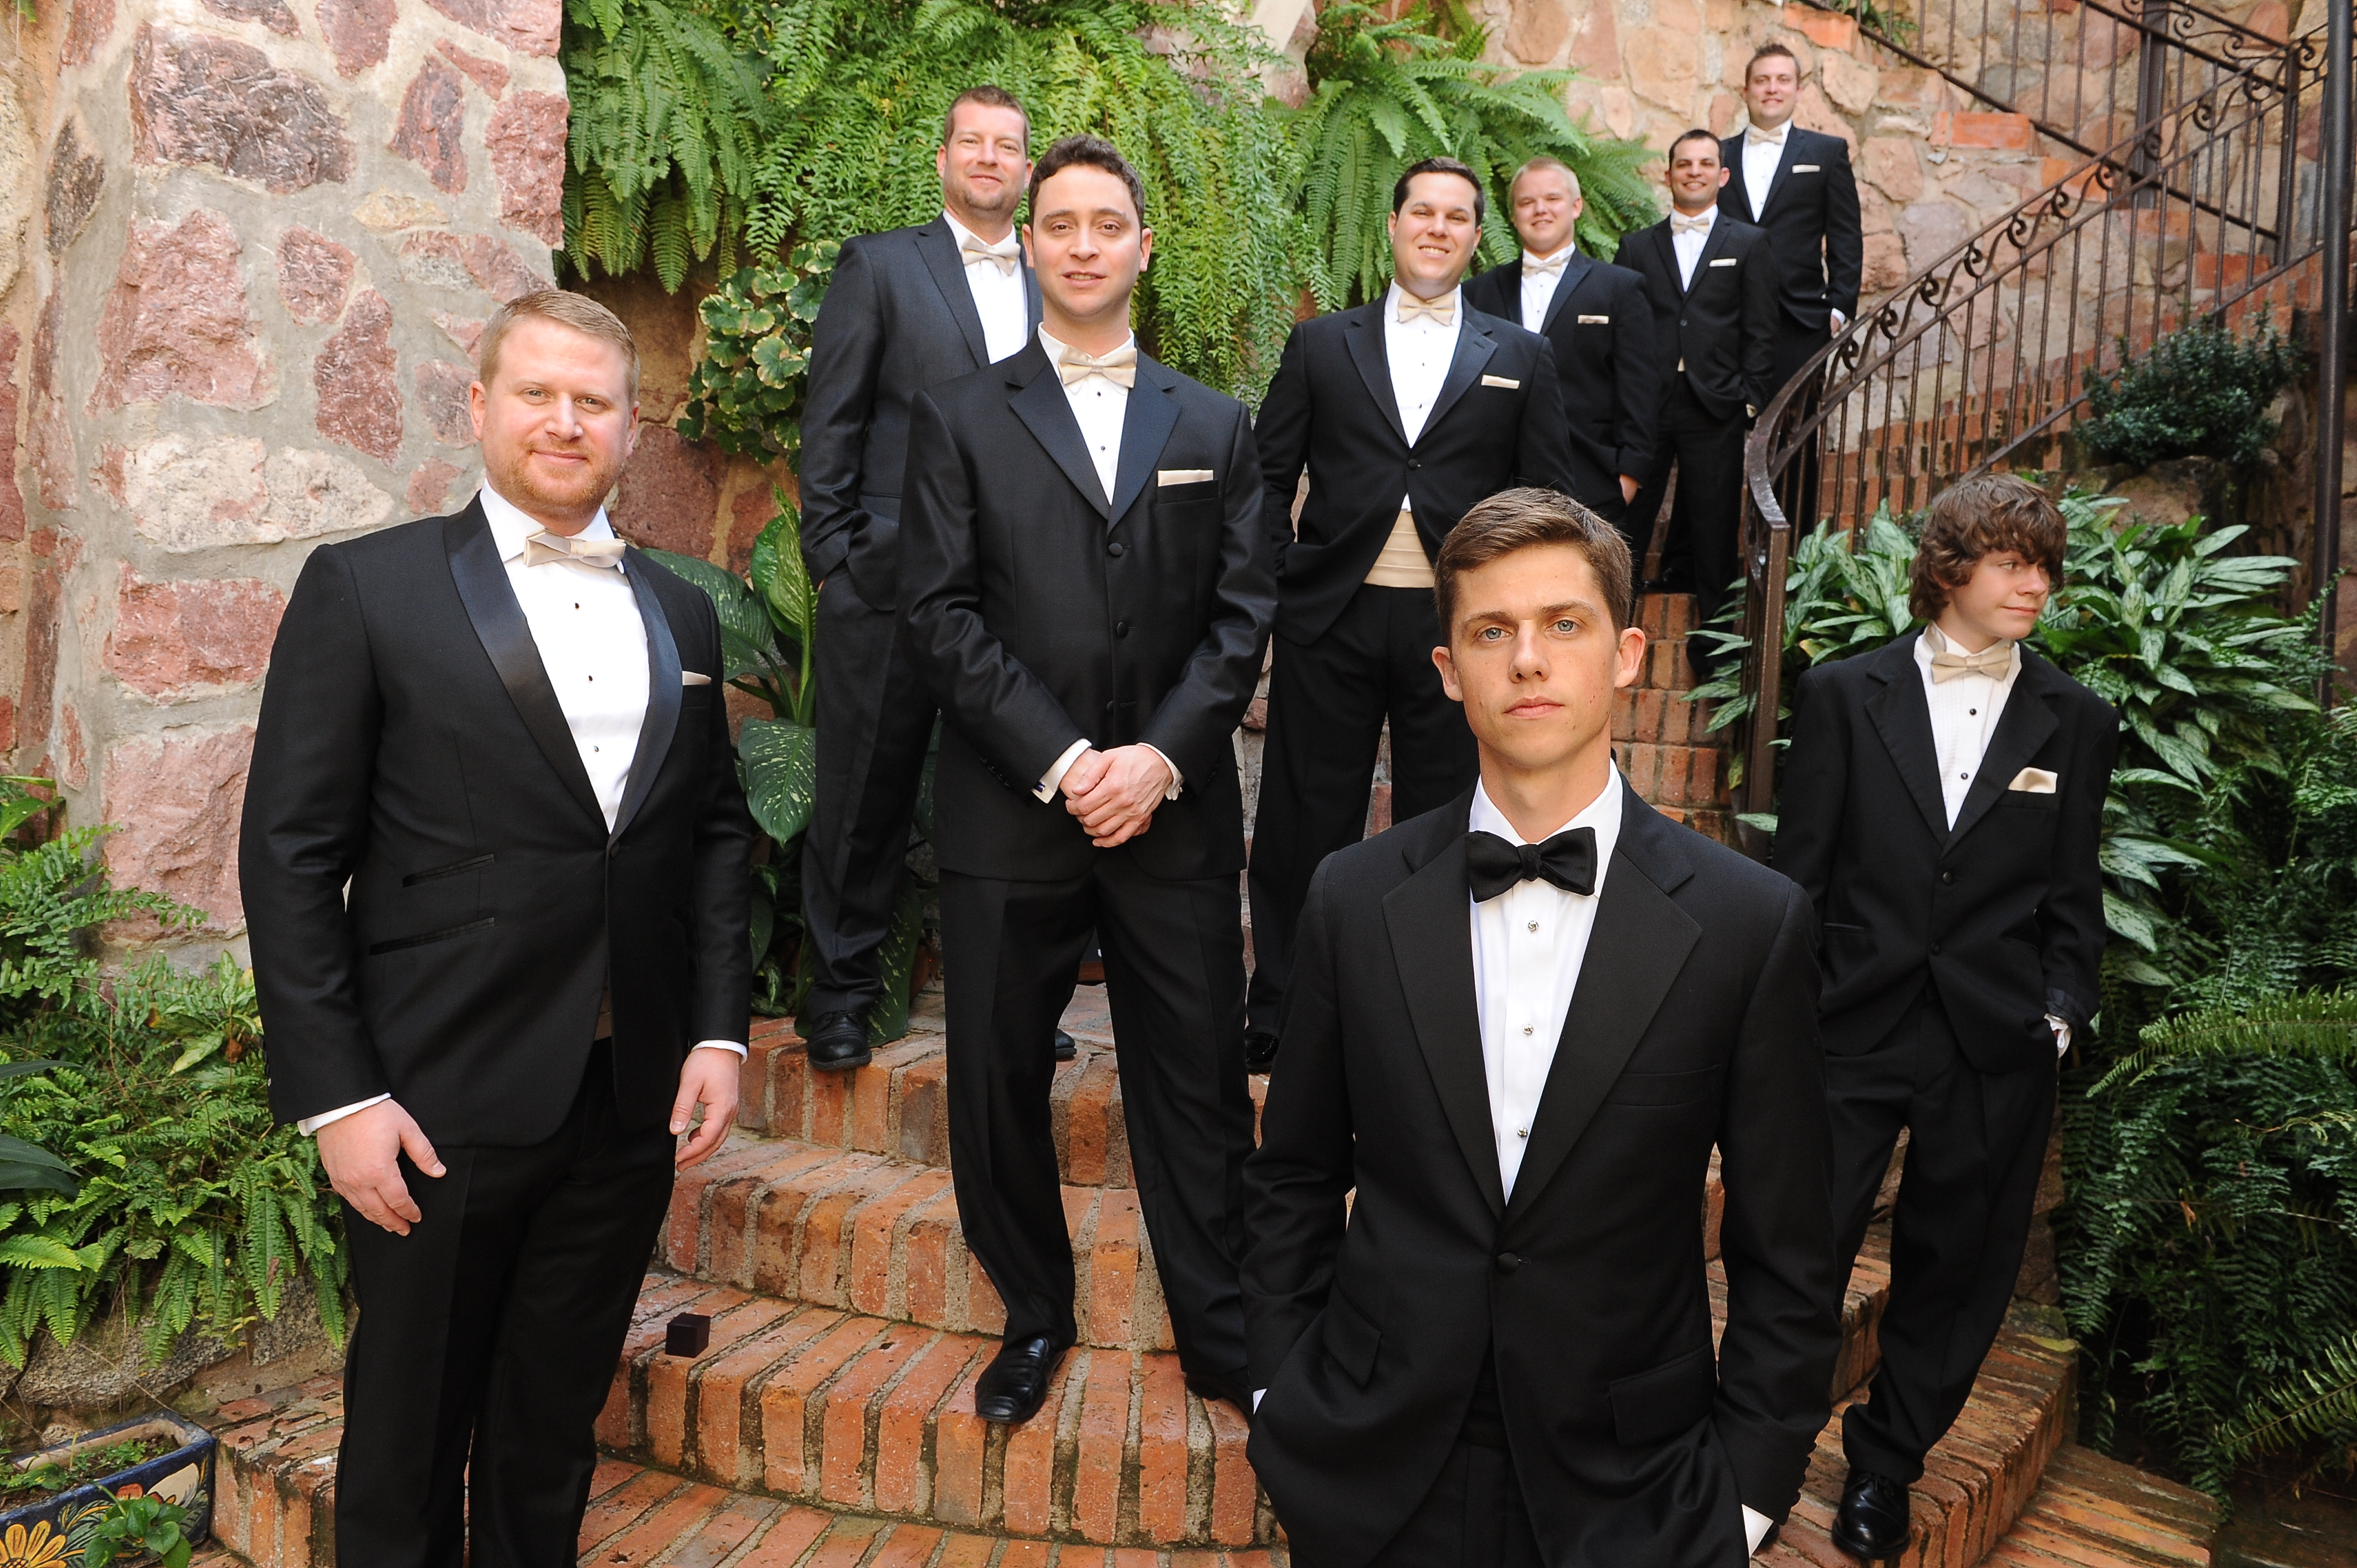 Wedding Style: Advice on Outfitting the Groomsmen | Style Girlfriend